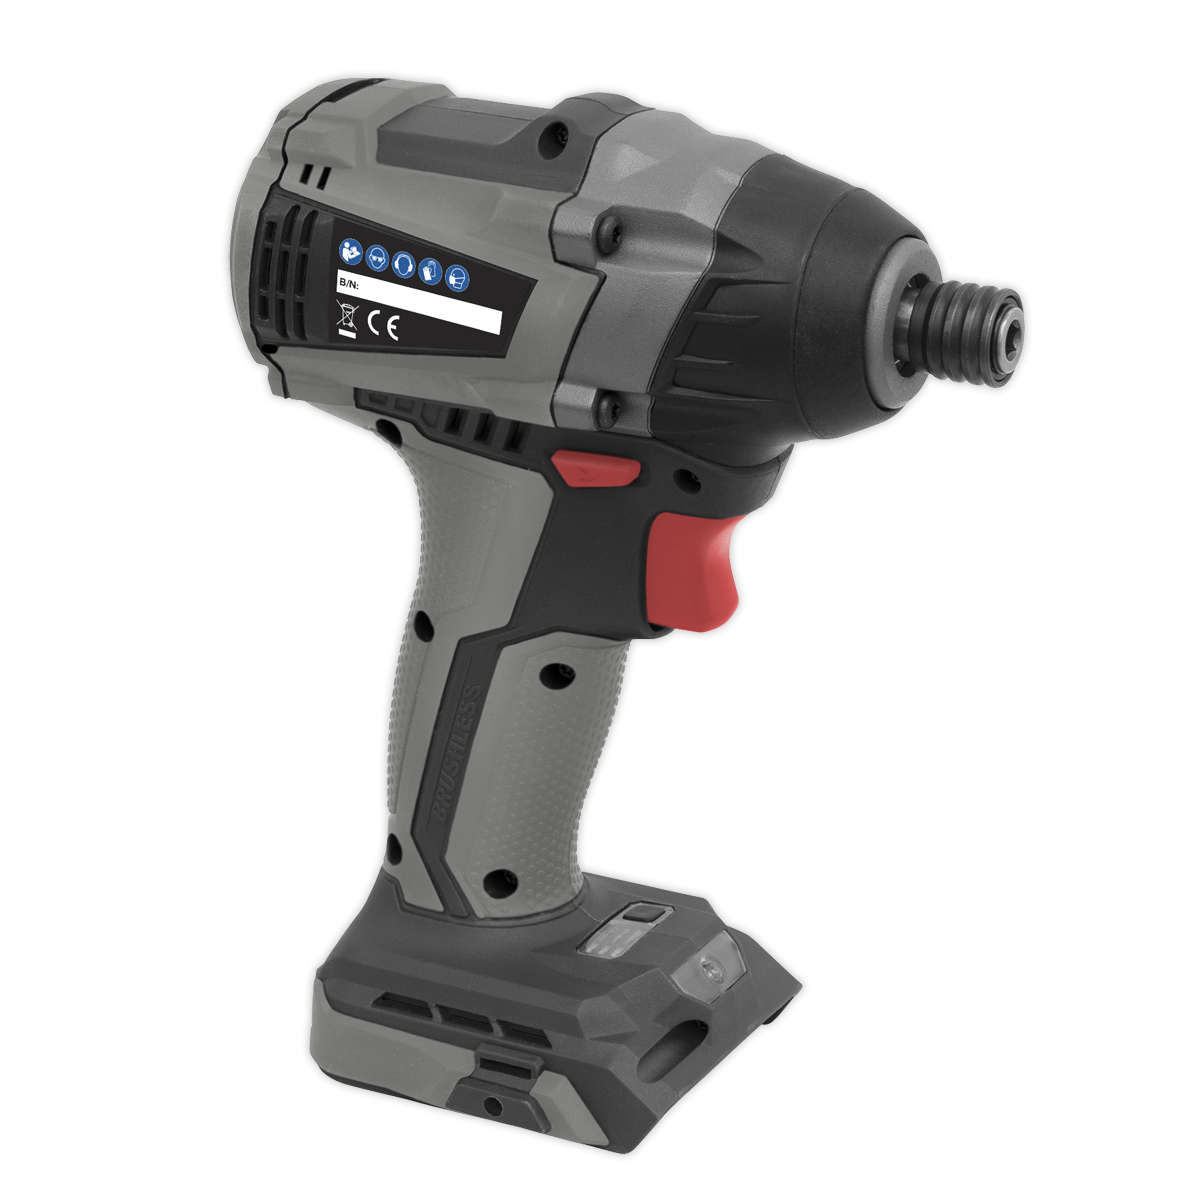 """Brushless Impact Driver 20V 1/4""""Hex 200Nm - Body Only"""